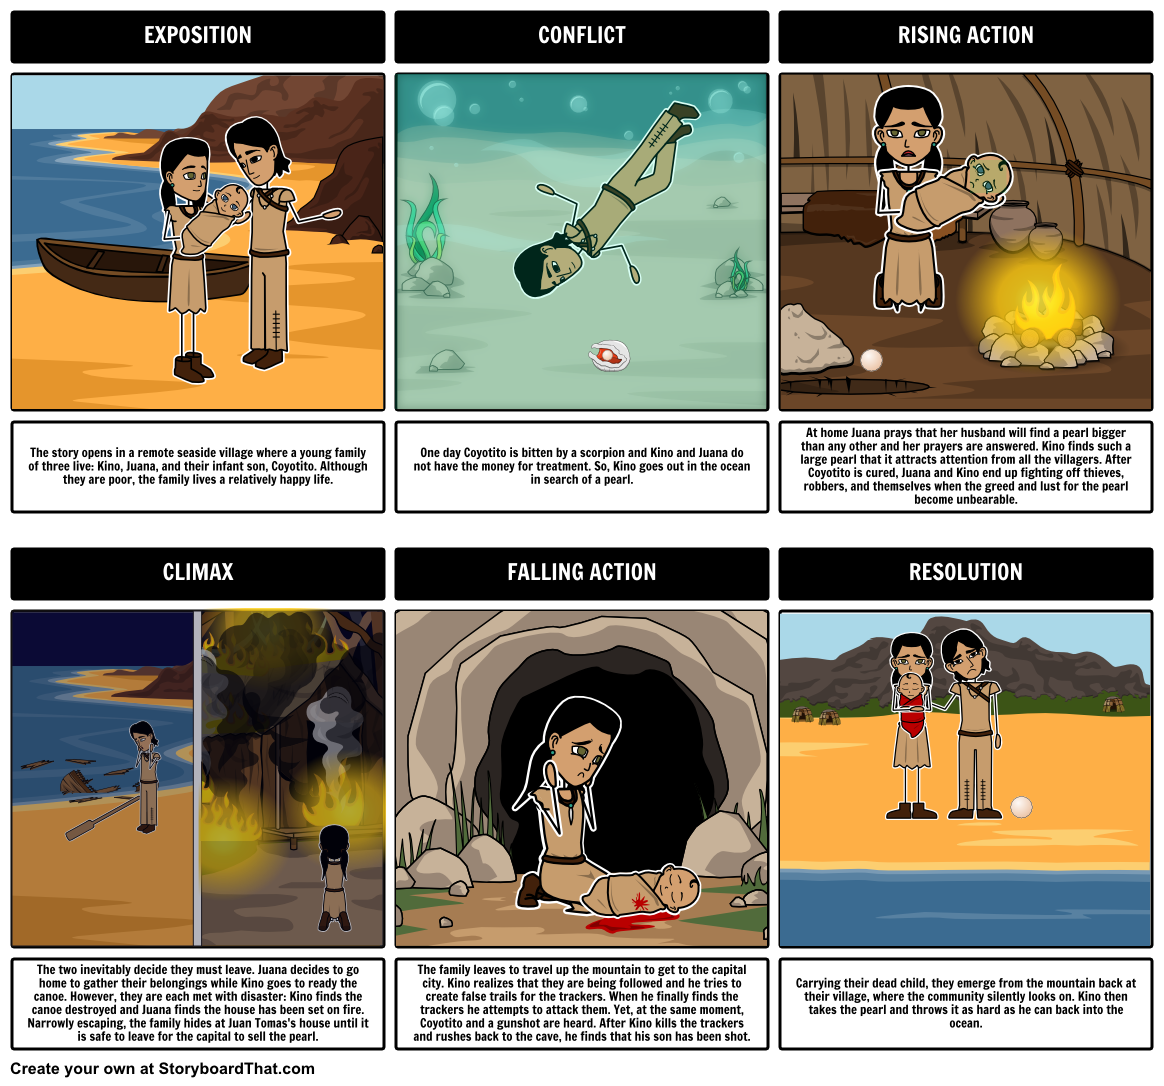 A common use for Storyboard That is to help students create a plot diagram of the events from a novel. Not only is this a great way to teach the parts of the plot, but it reinforces major events and help students develop greater understanding of literary structures. View the full teacher guide here: https://www.pinterest.com/storyboardthat/the-pearl/